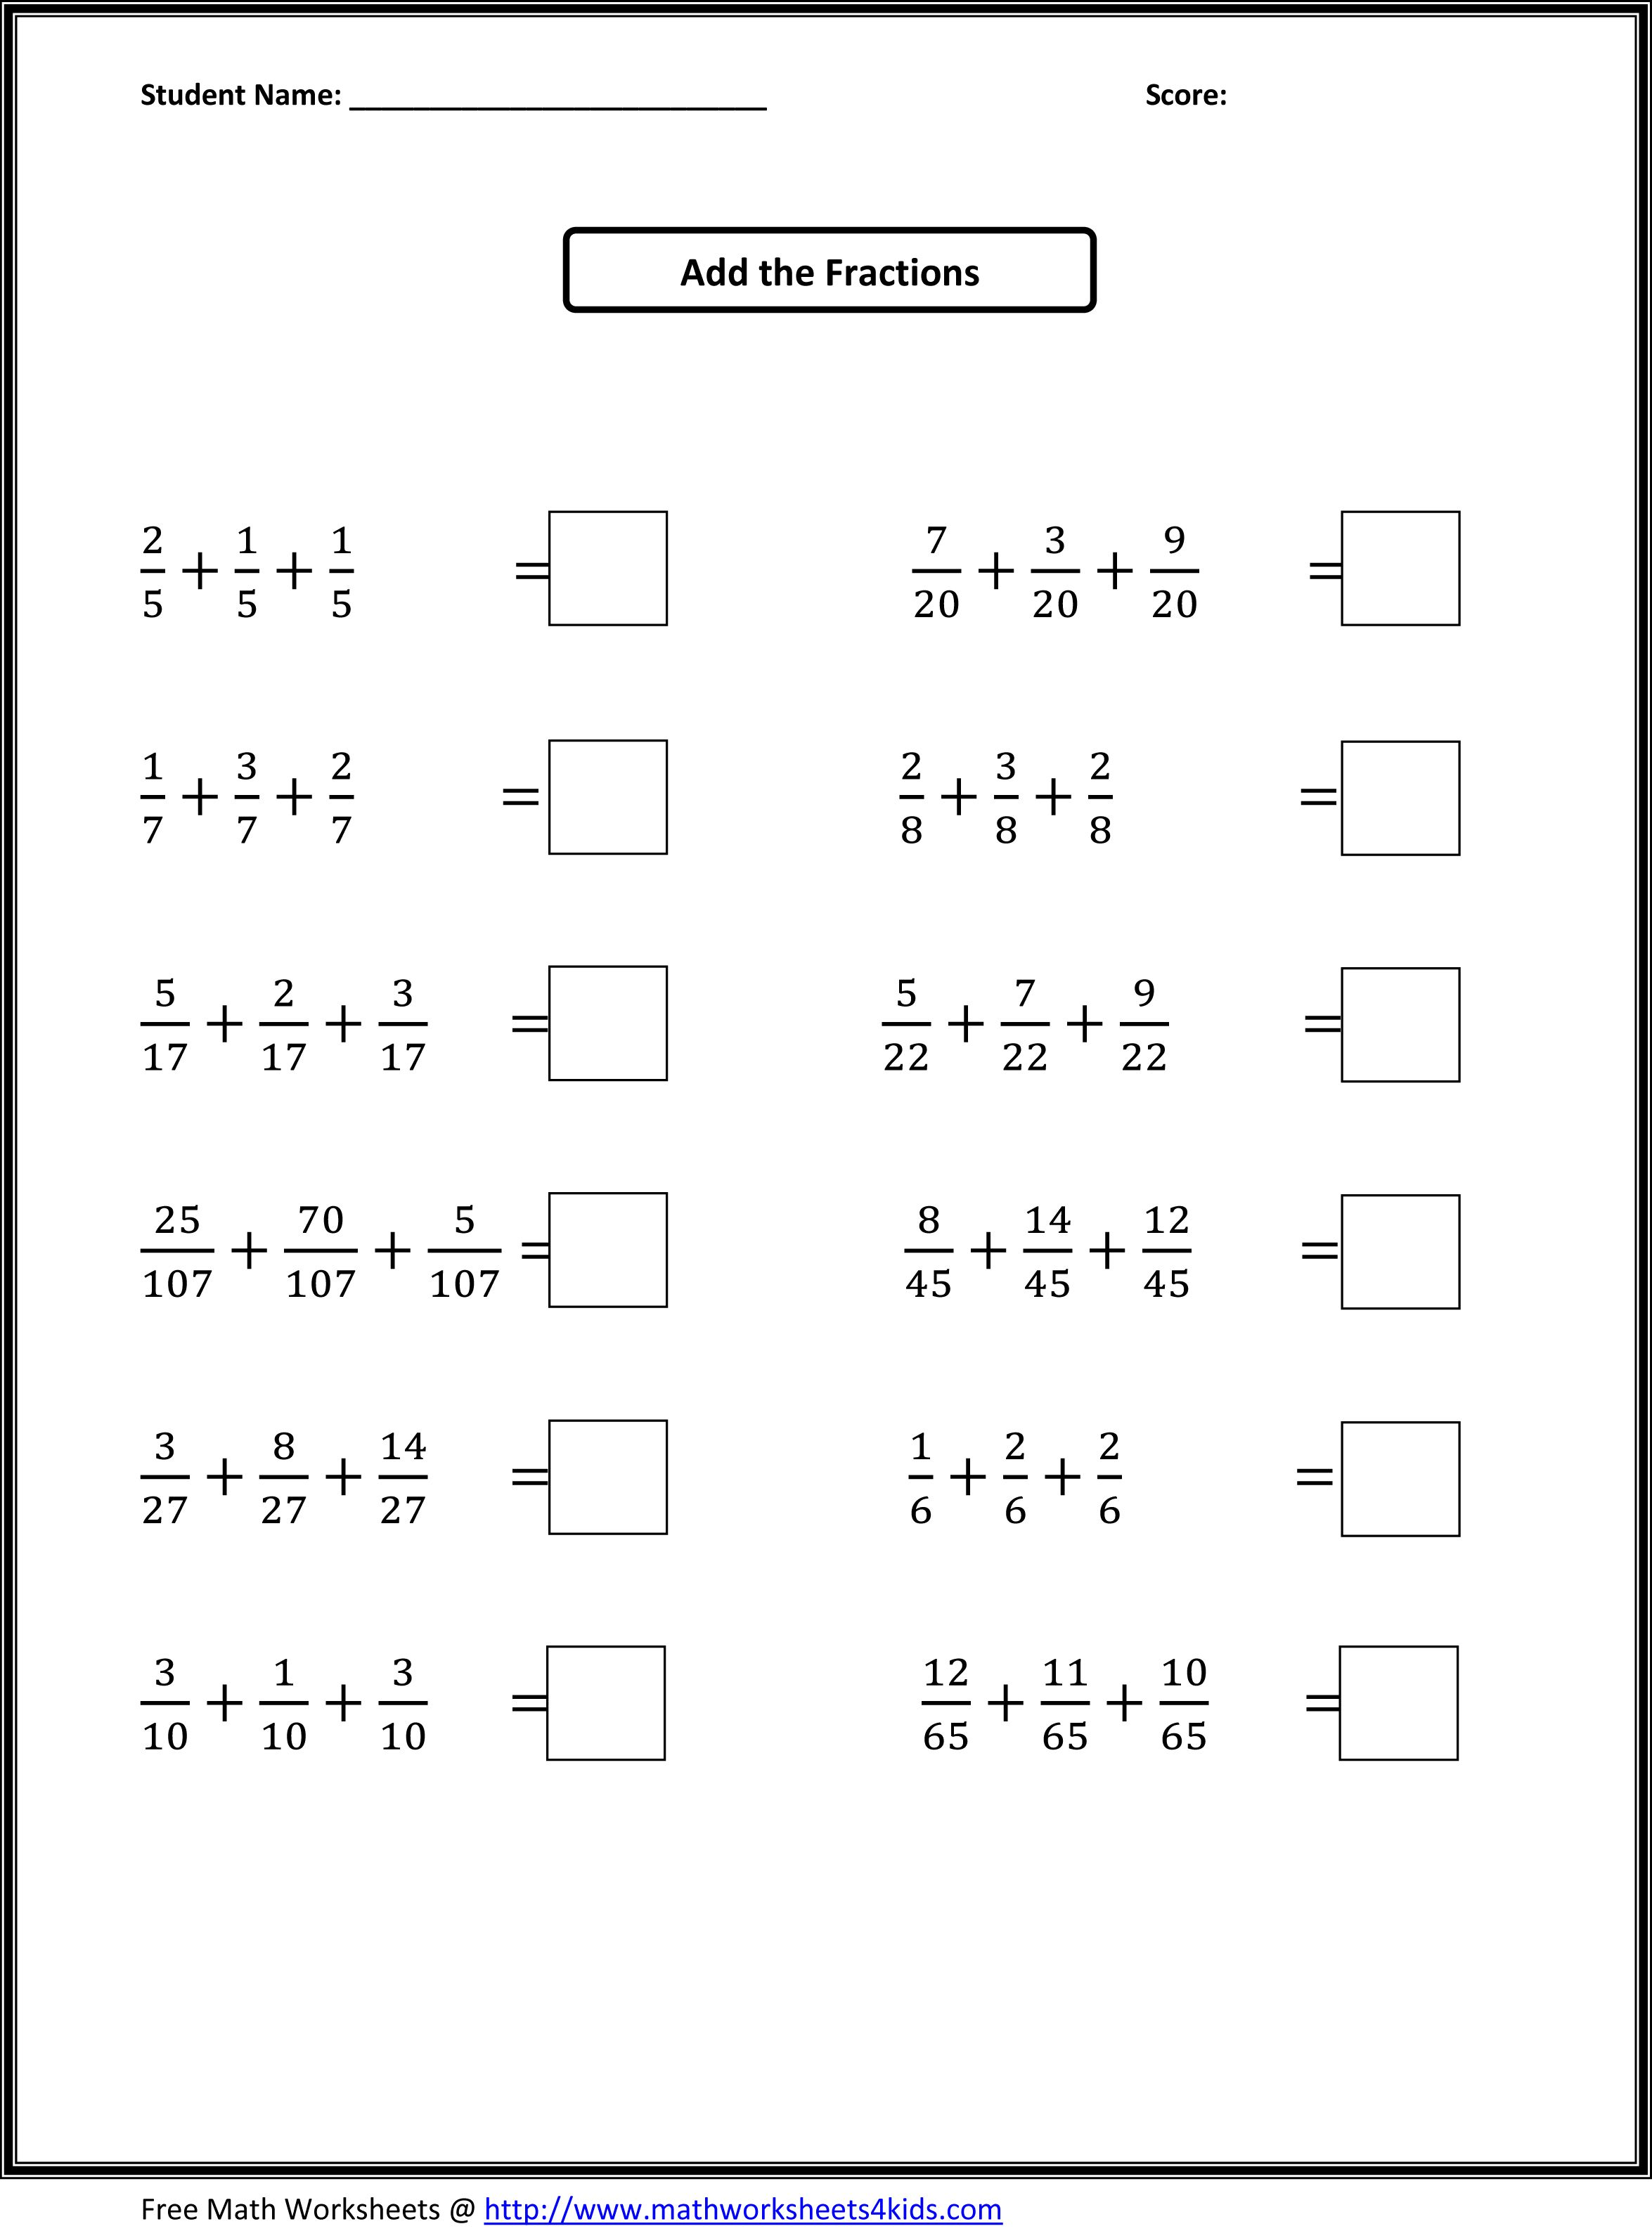 Printables Math Worksheets For Fourth Graders 1000 images about math worksheets on pinterest 4th grade geometry and fourth math